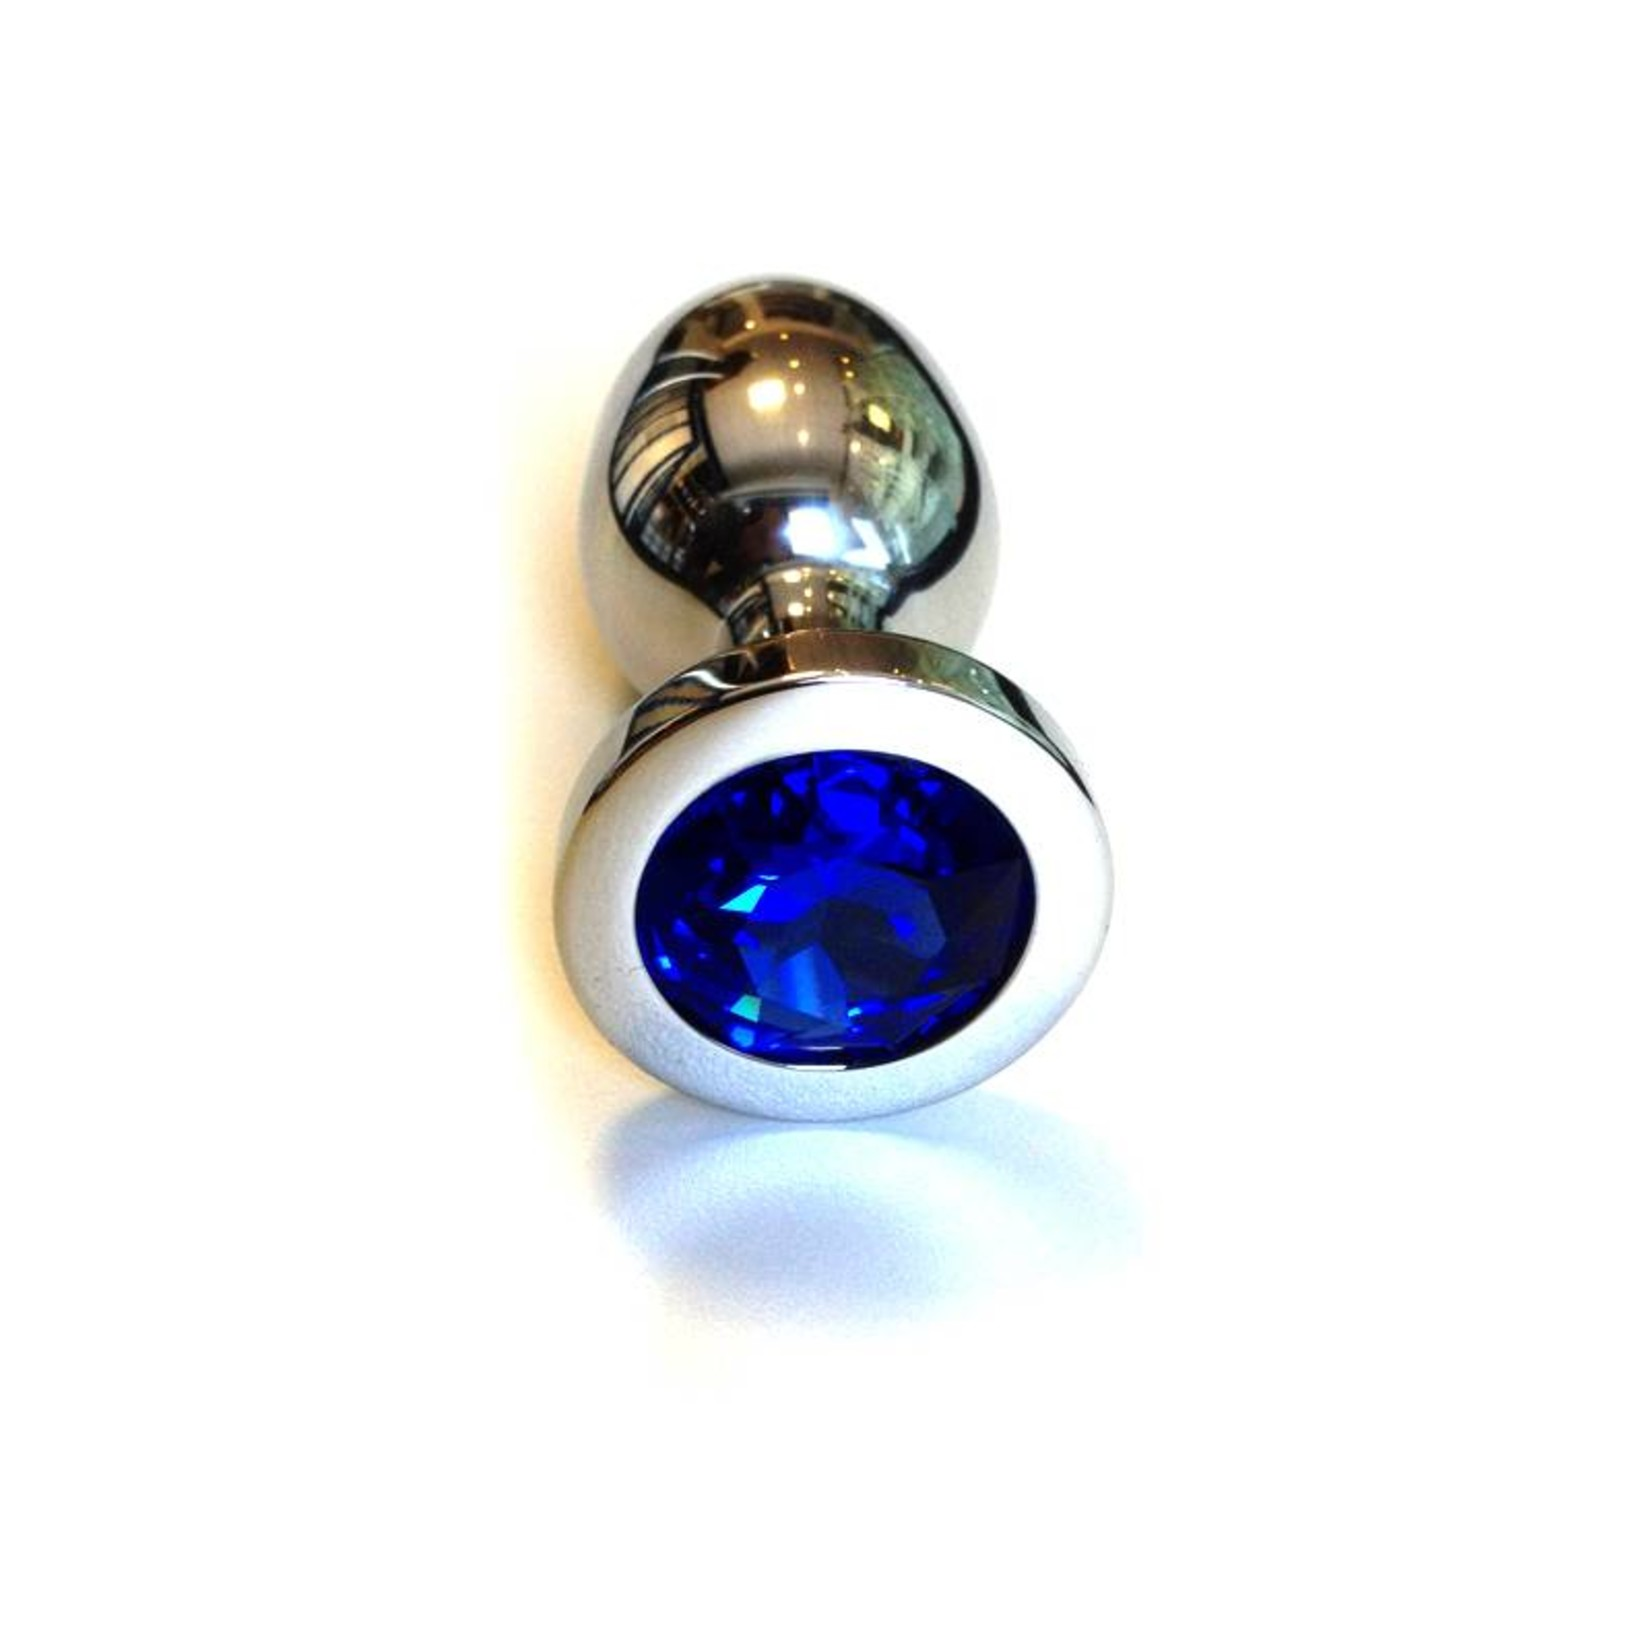 KIOTOS Steel Jewel Buttplug - Large Blue